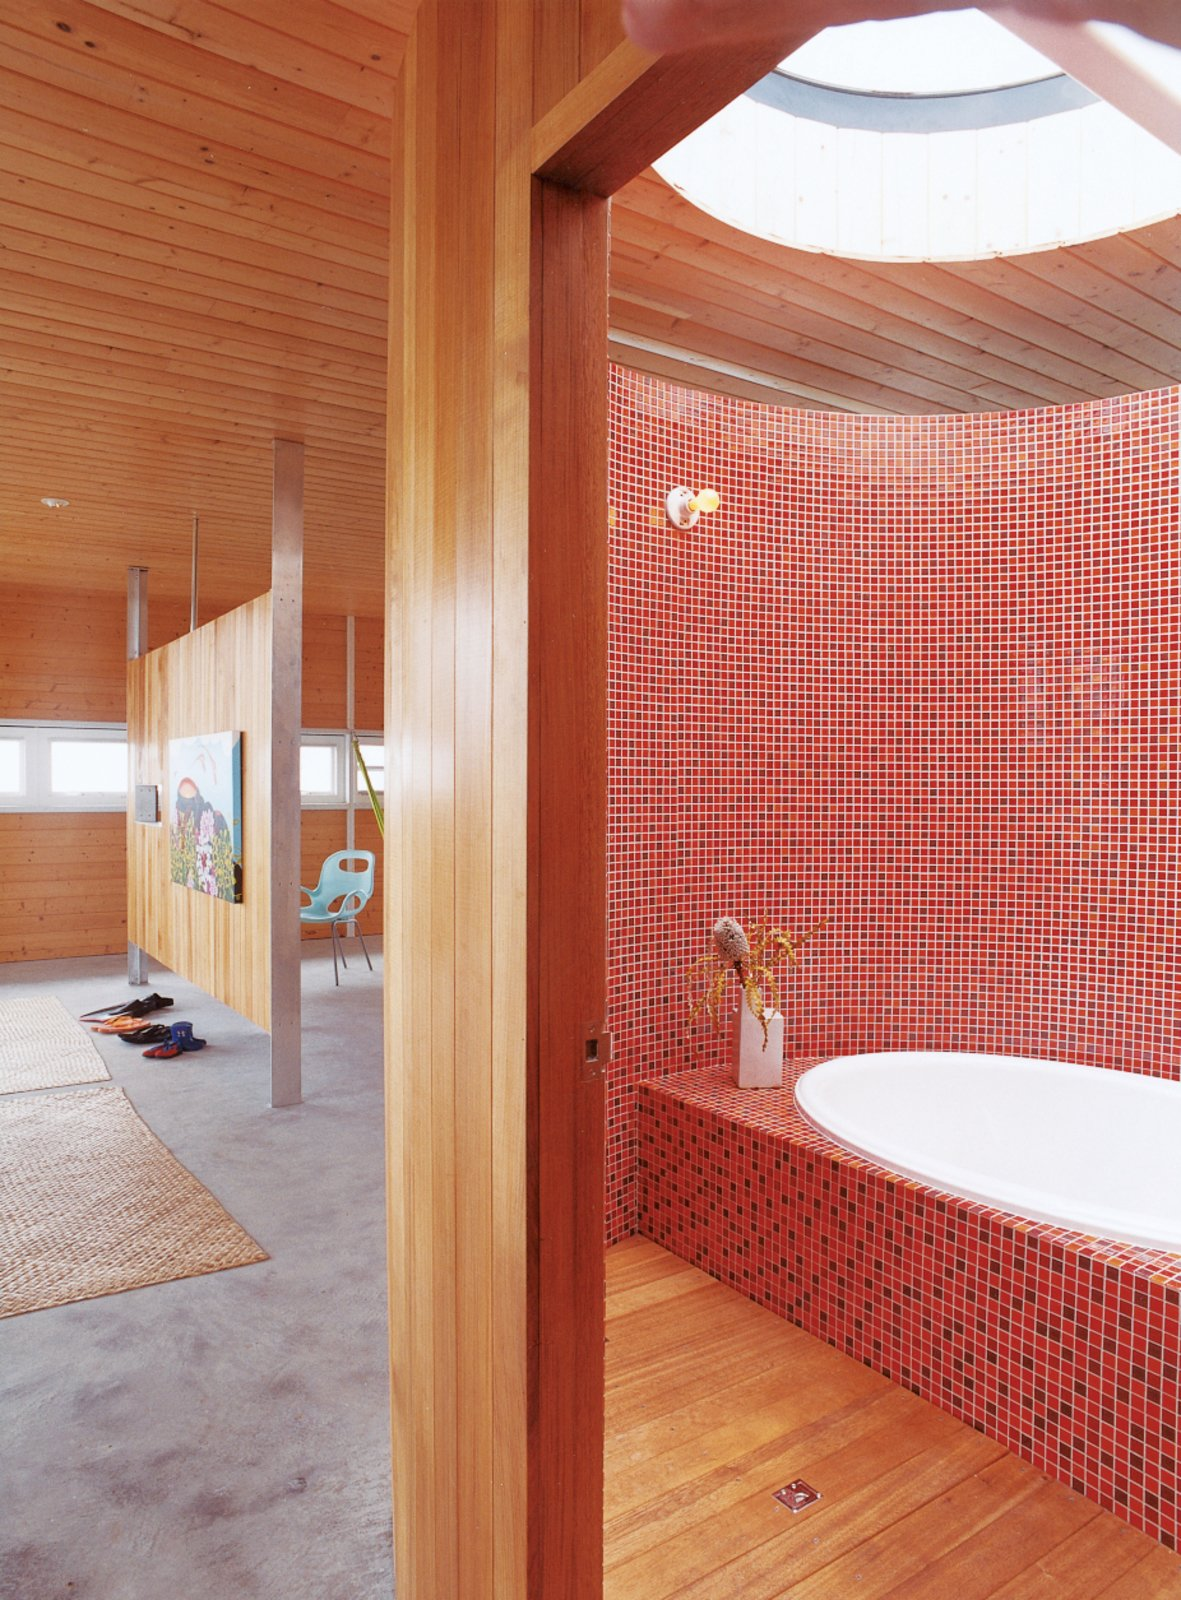 Fiery mosaics tile the majority of this Hawaiian tub room. Built and occupied by architect Craig Steely and his wife, the rest of the home is just as warm and tranquil aptly named Lavaflow 2.  Photo 20 of 20 in 20 Bathrooms With Transformative Tiles